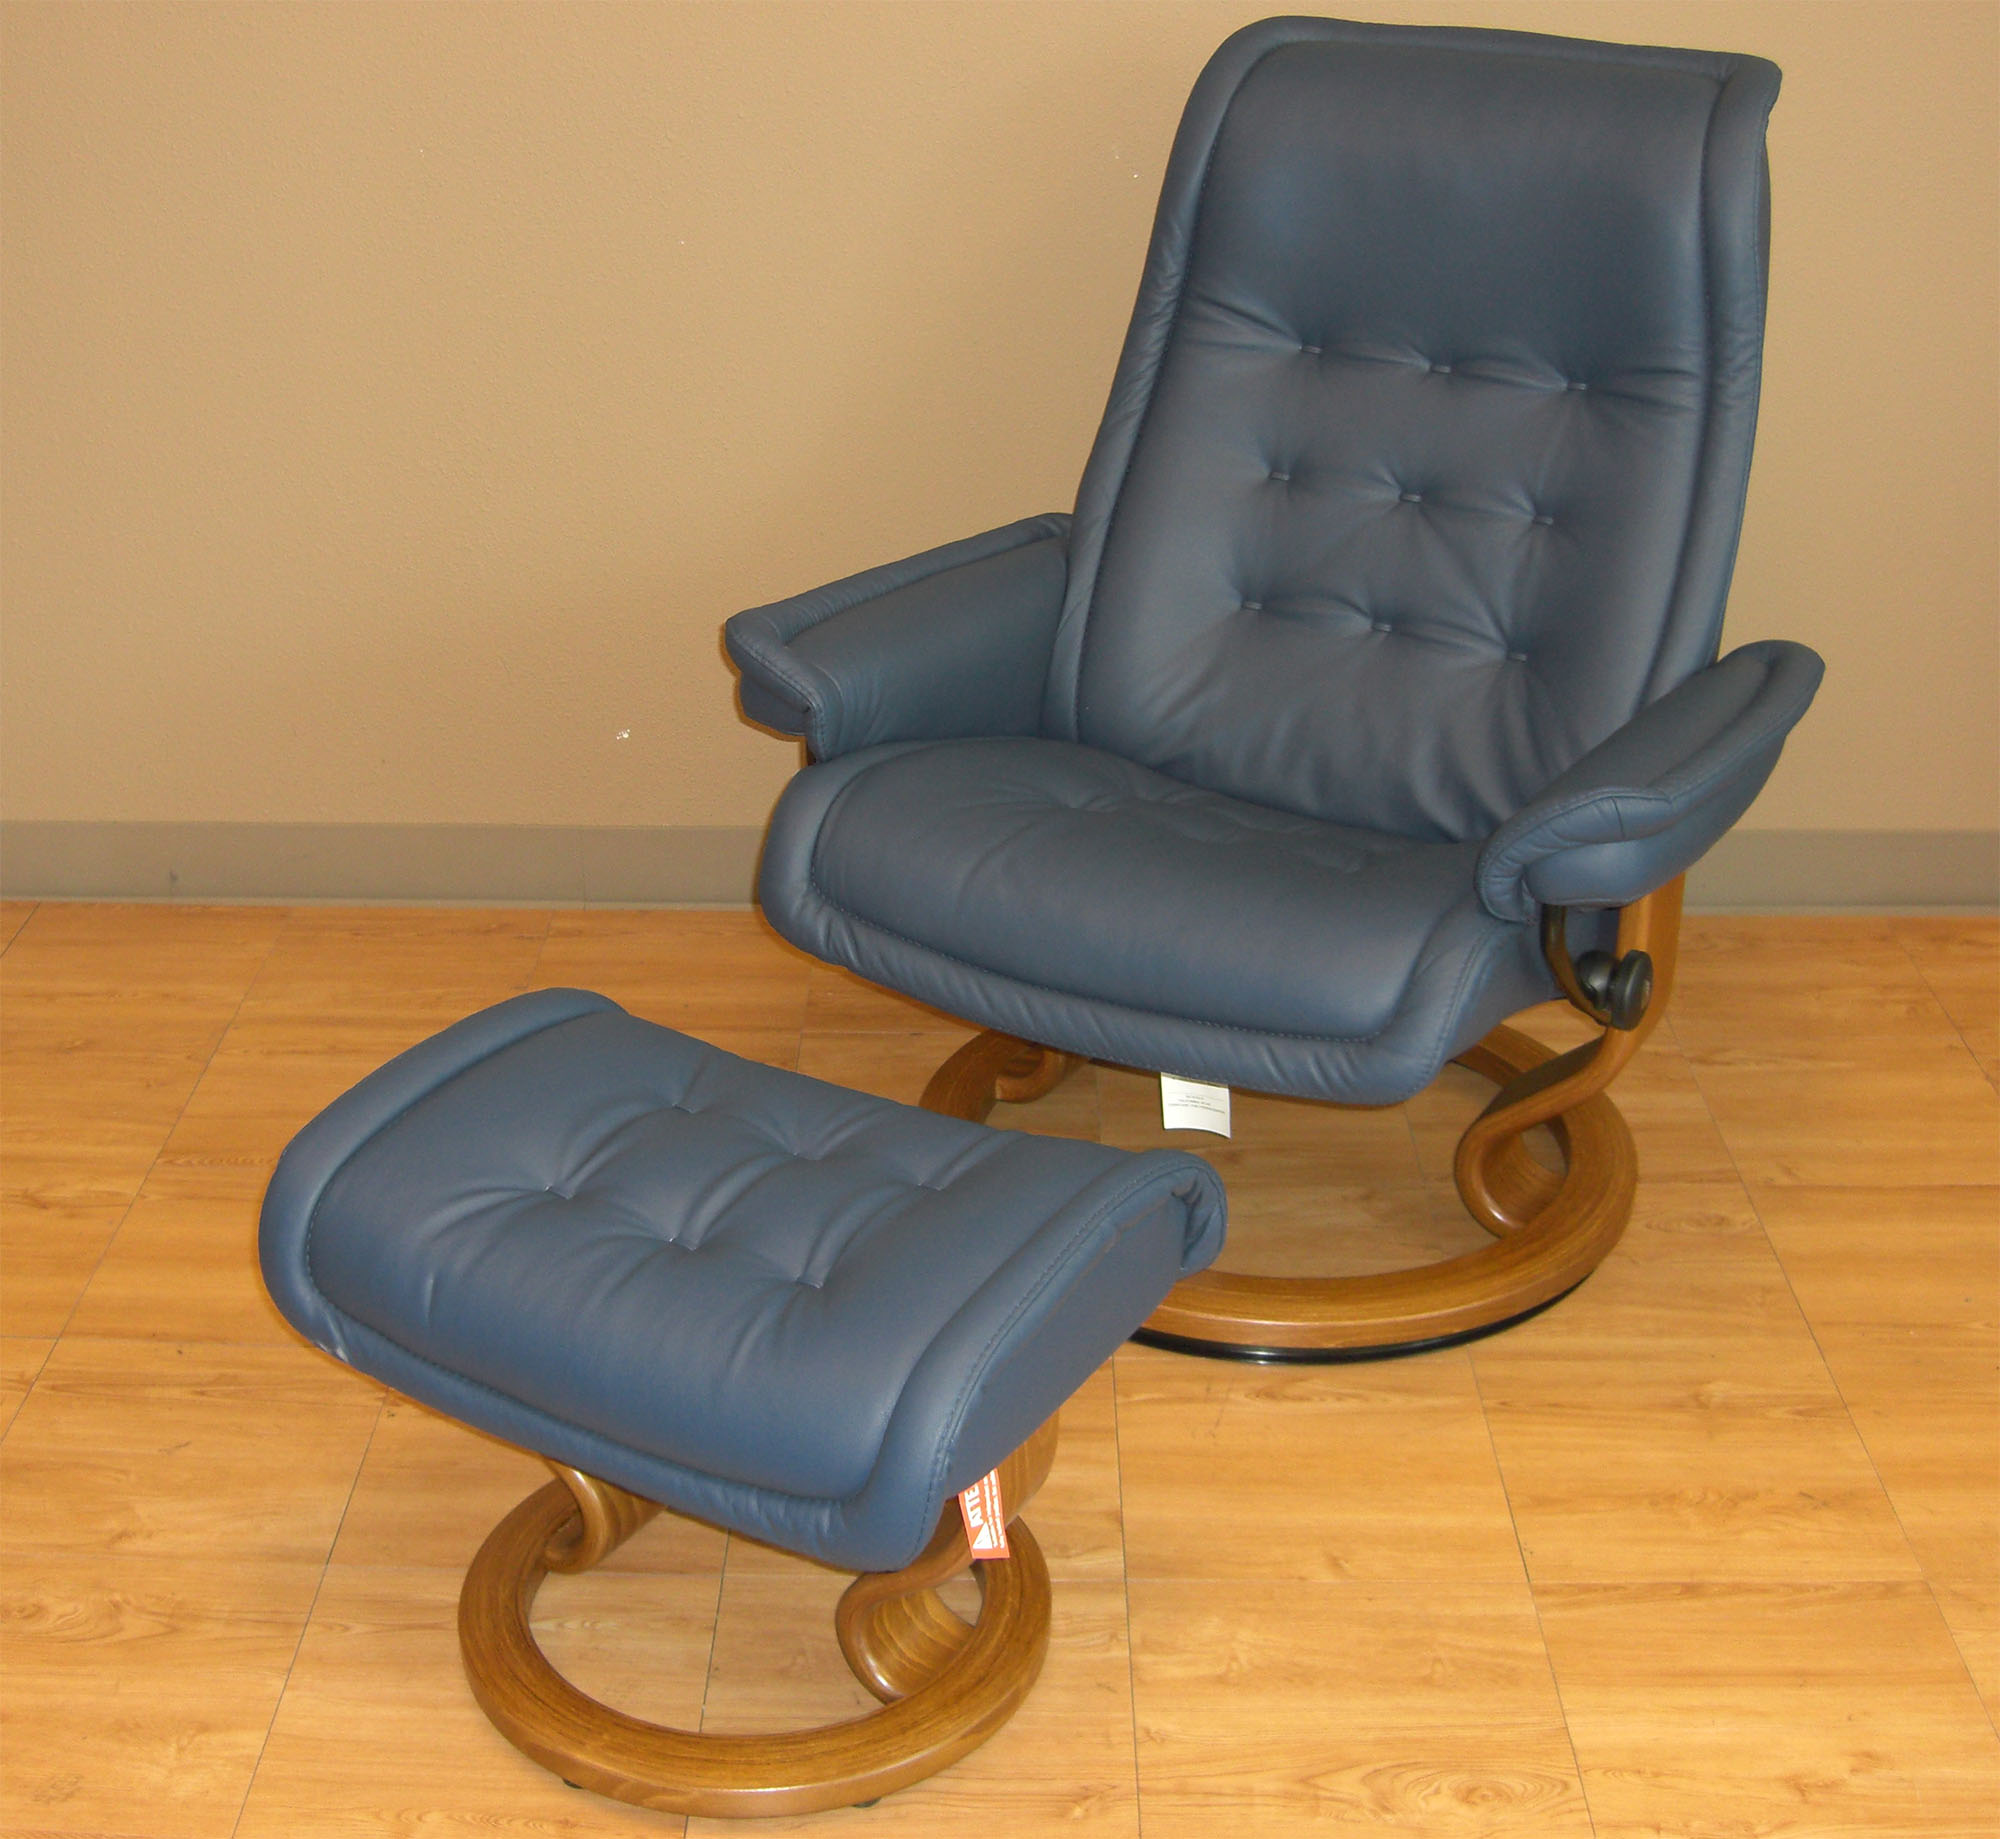 Stressless Royal Paloma Oxford Blue Leather Chair : ekornes stressless governor recliner - islam-shia.org